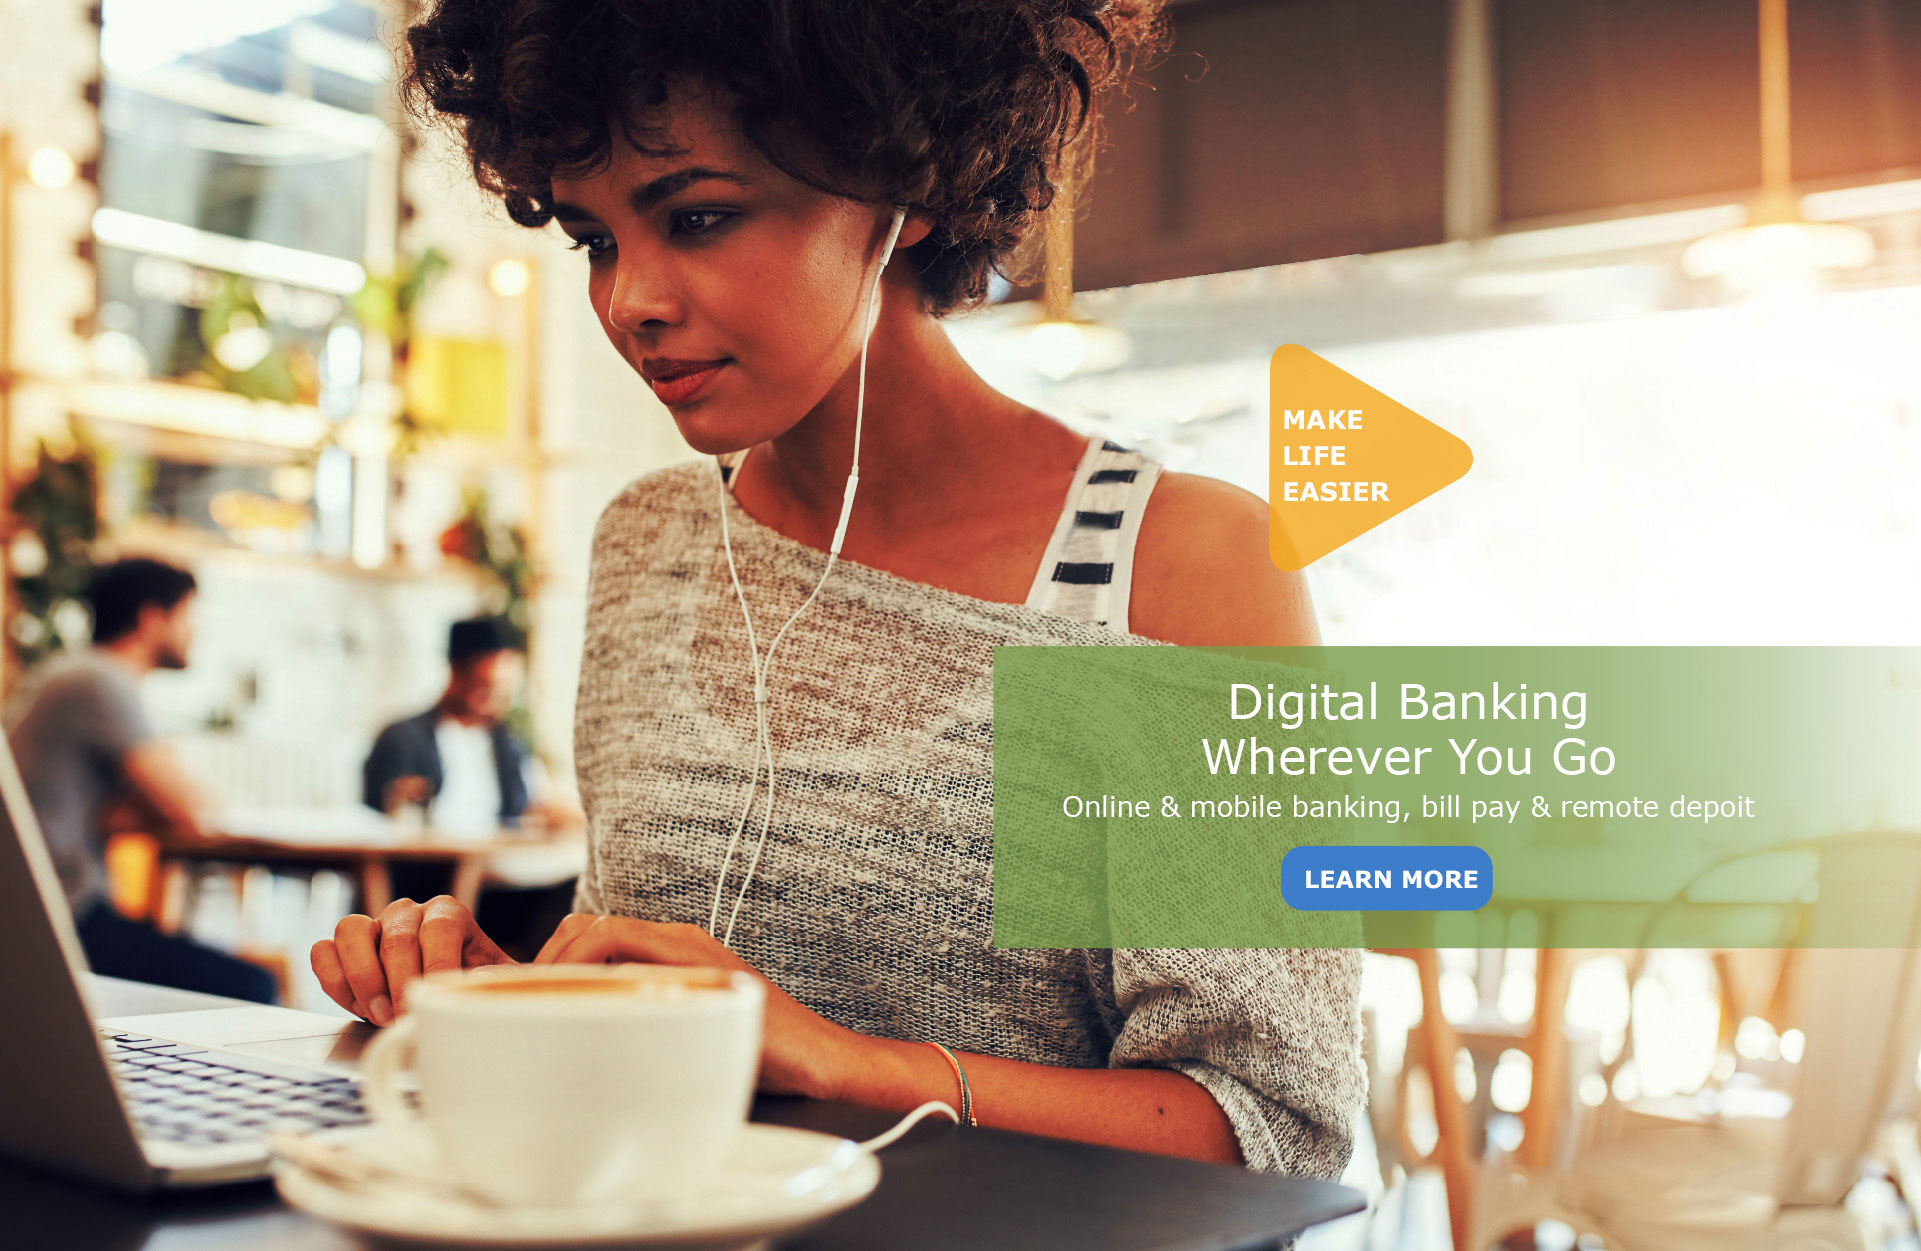 Make Life easier with Digital Banking!